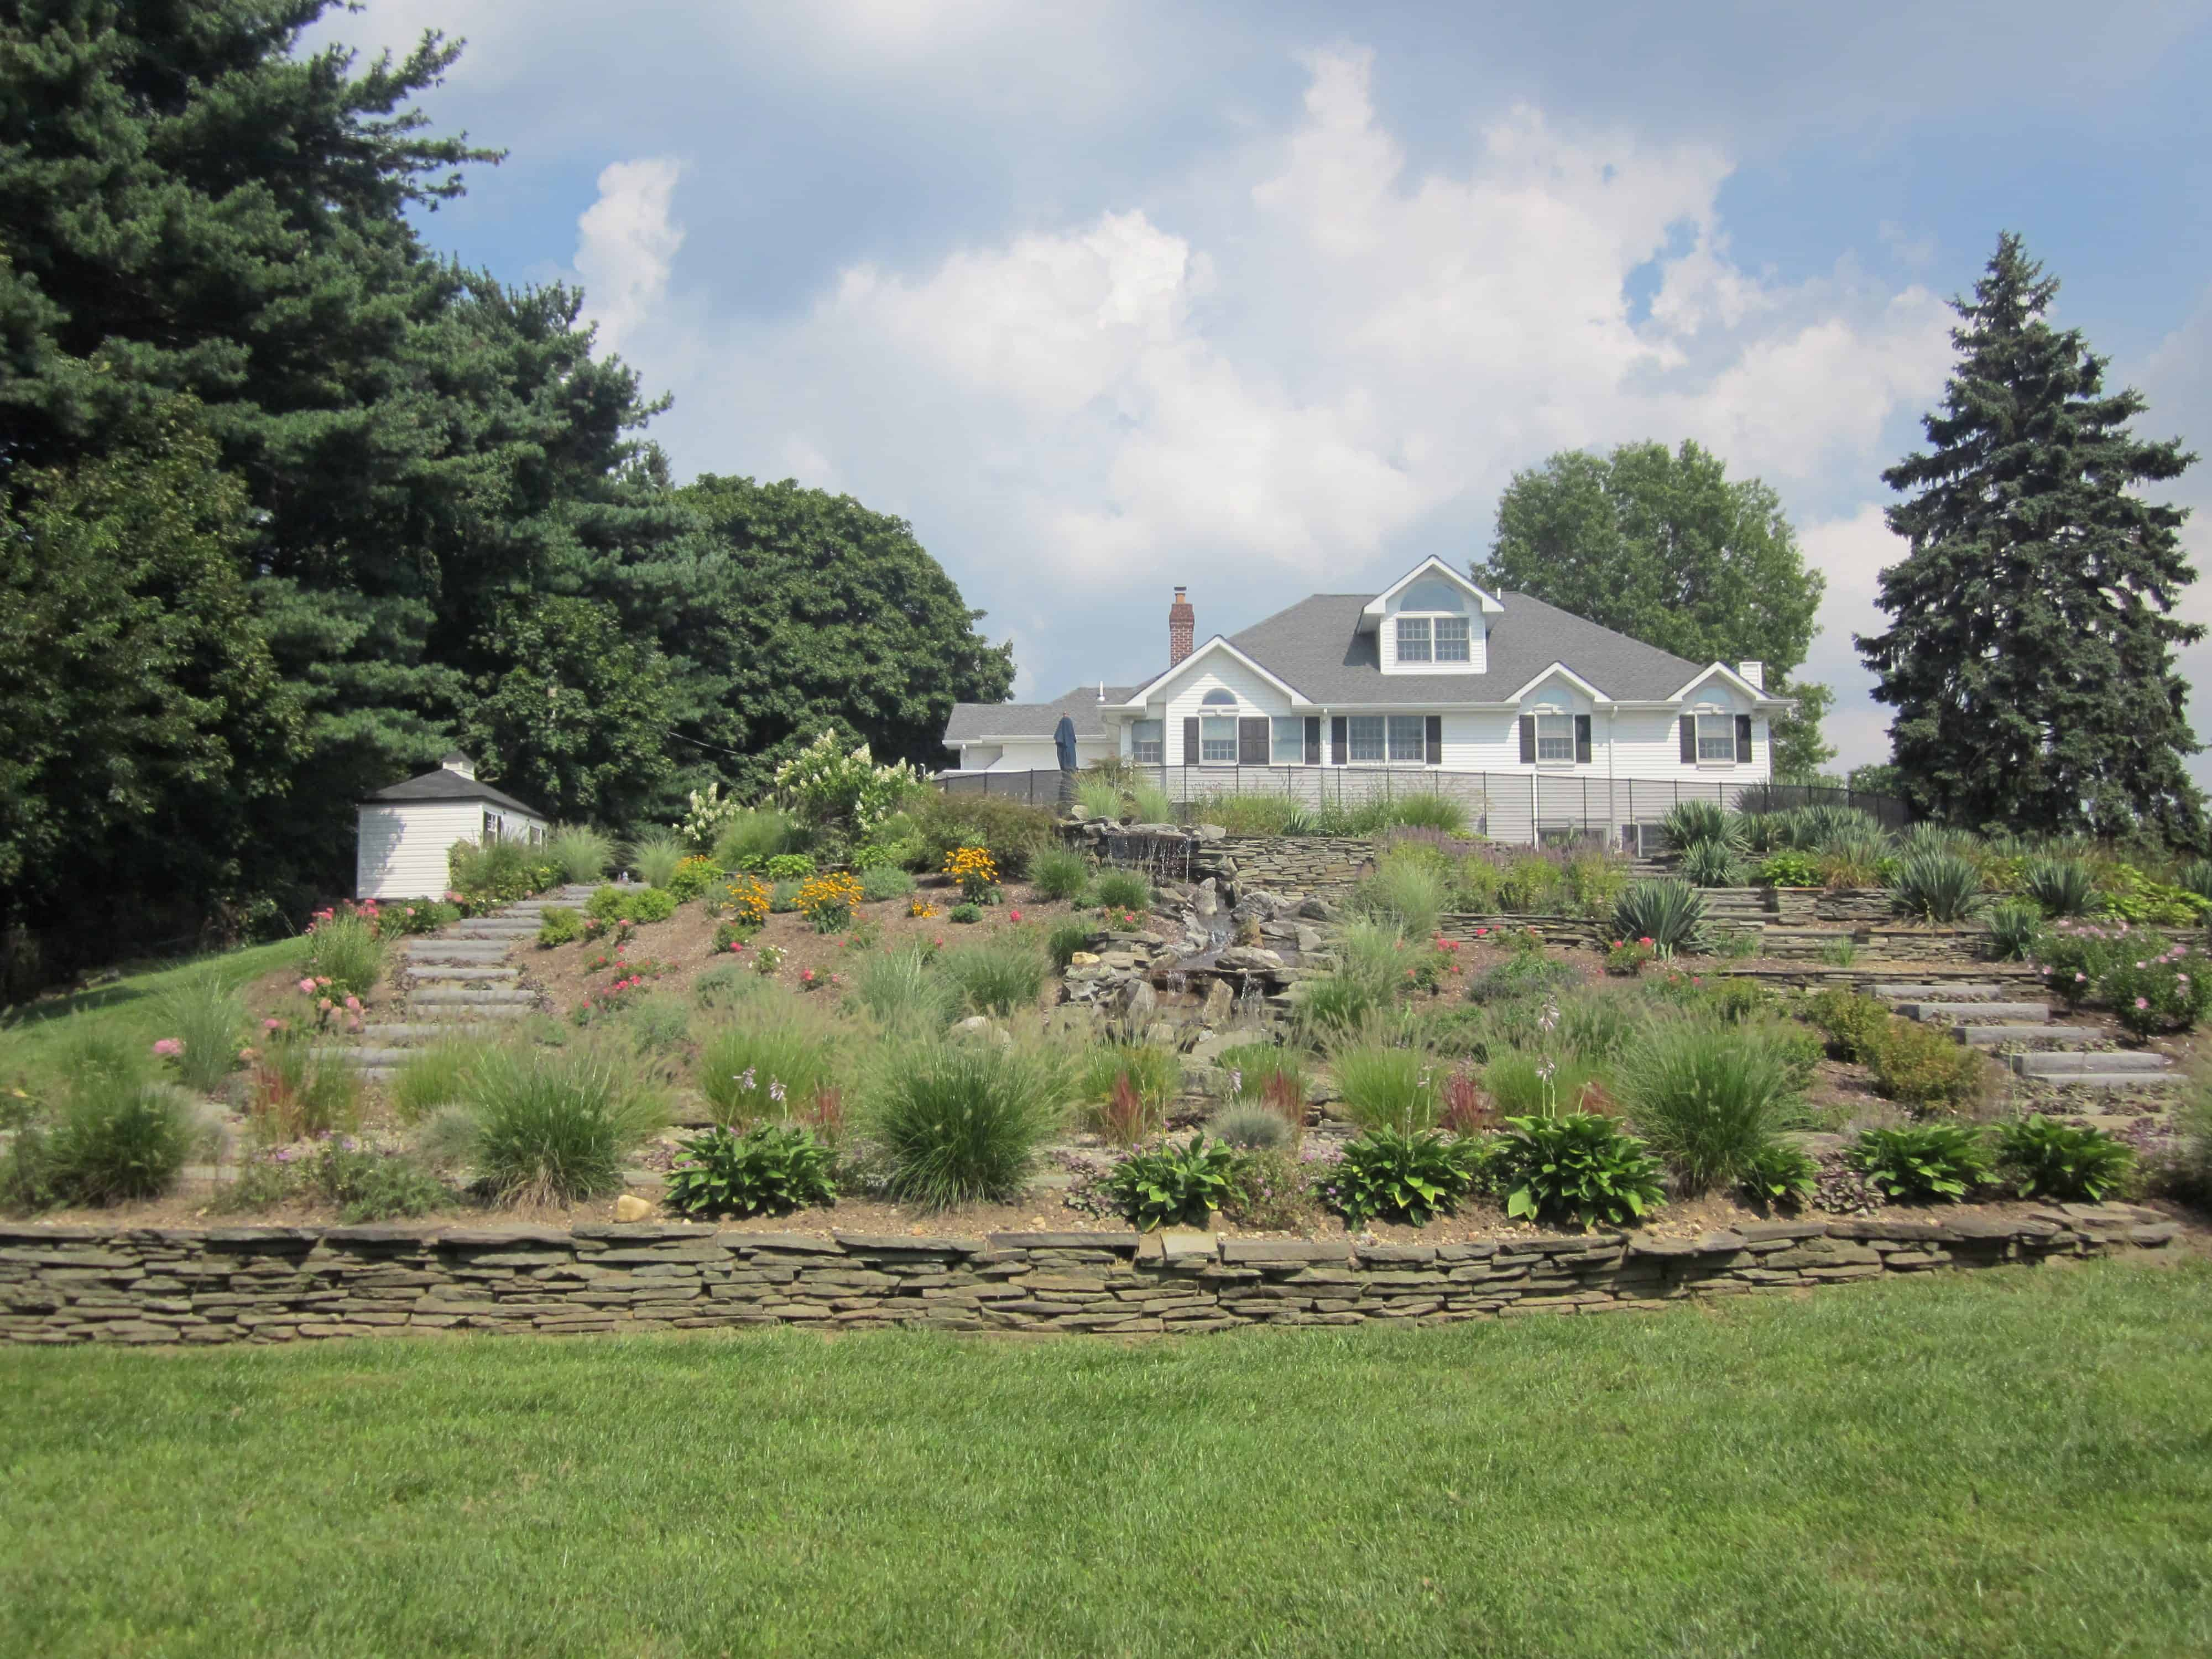 Landscape Plantings - Foreground - Mixed Grasses - Background - Mixed Perennials - Syosset, Long Island NY